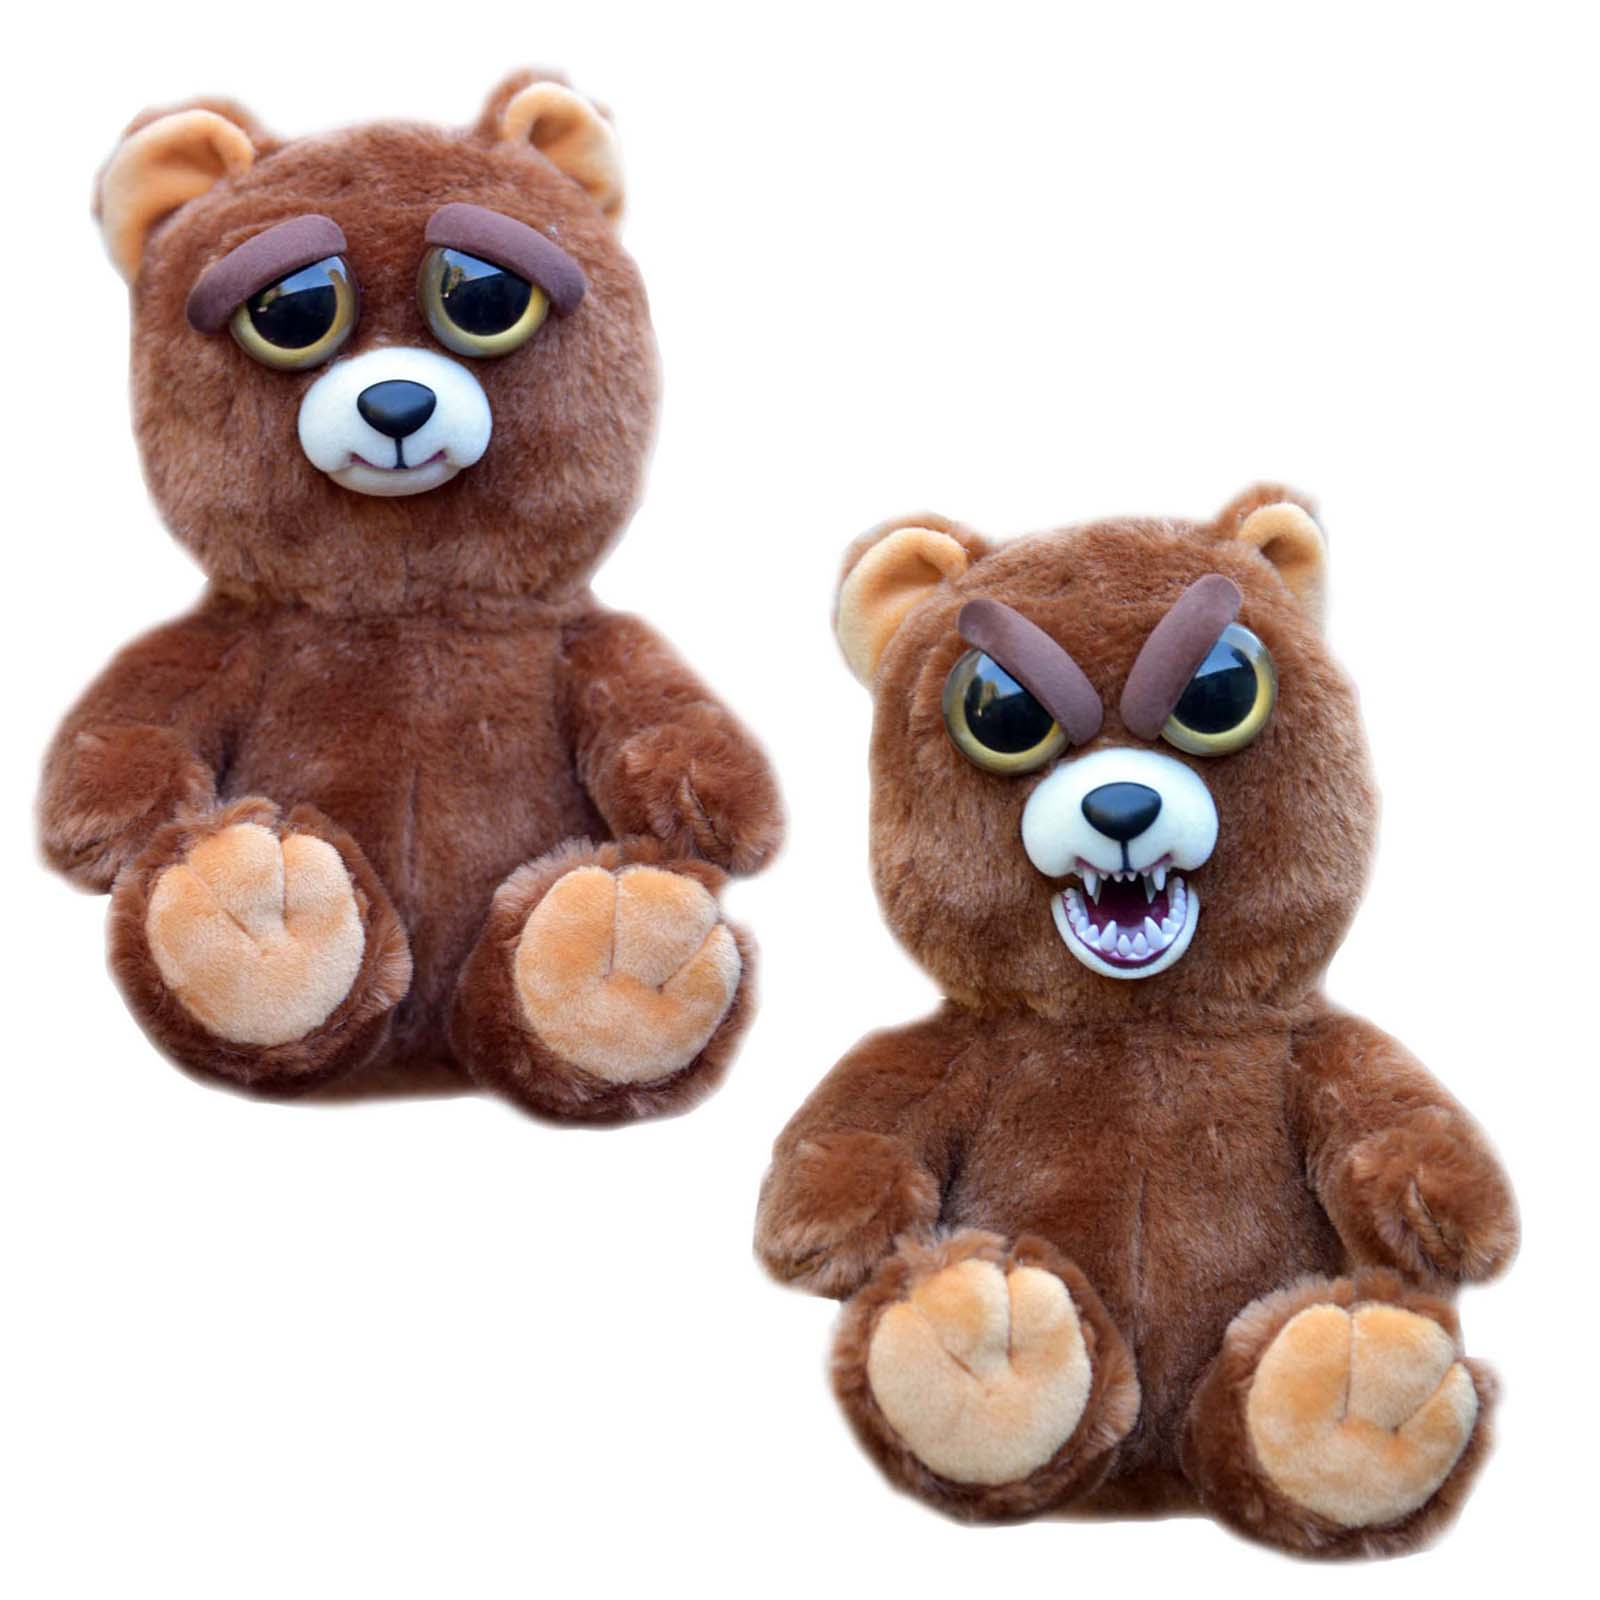 Soft Plush Toys : Feisty pets soft plush stuffed scary face must have toy